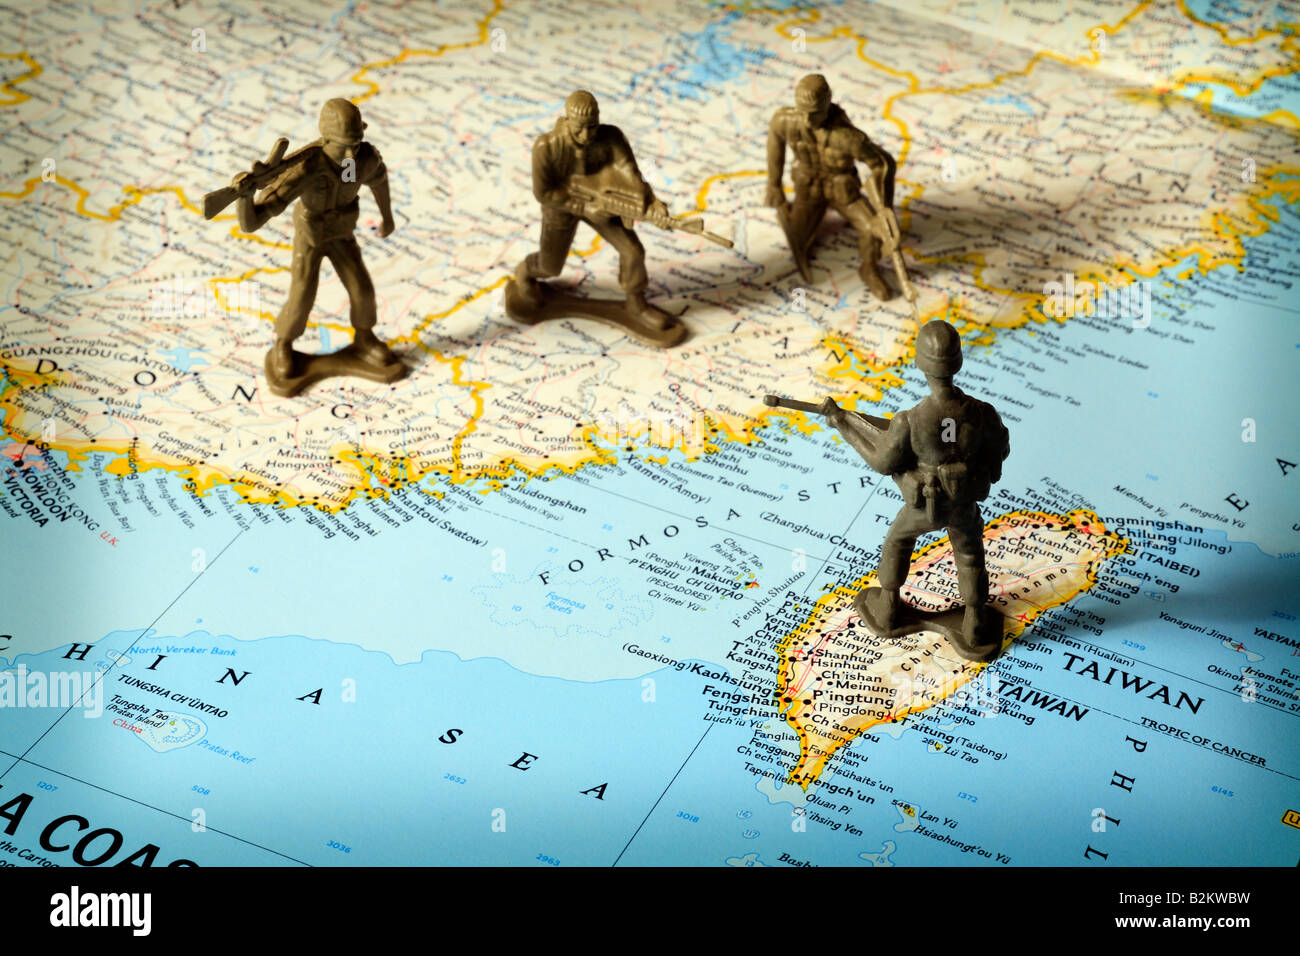 Toy soldiers on map of China and Taiwan face off - Stock Image